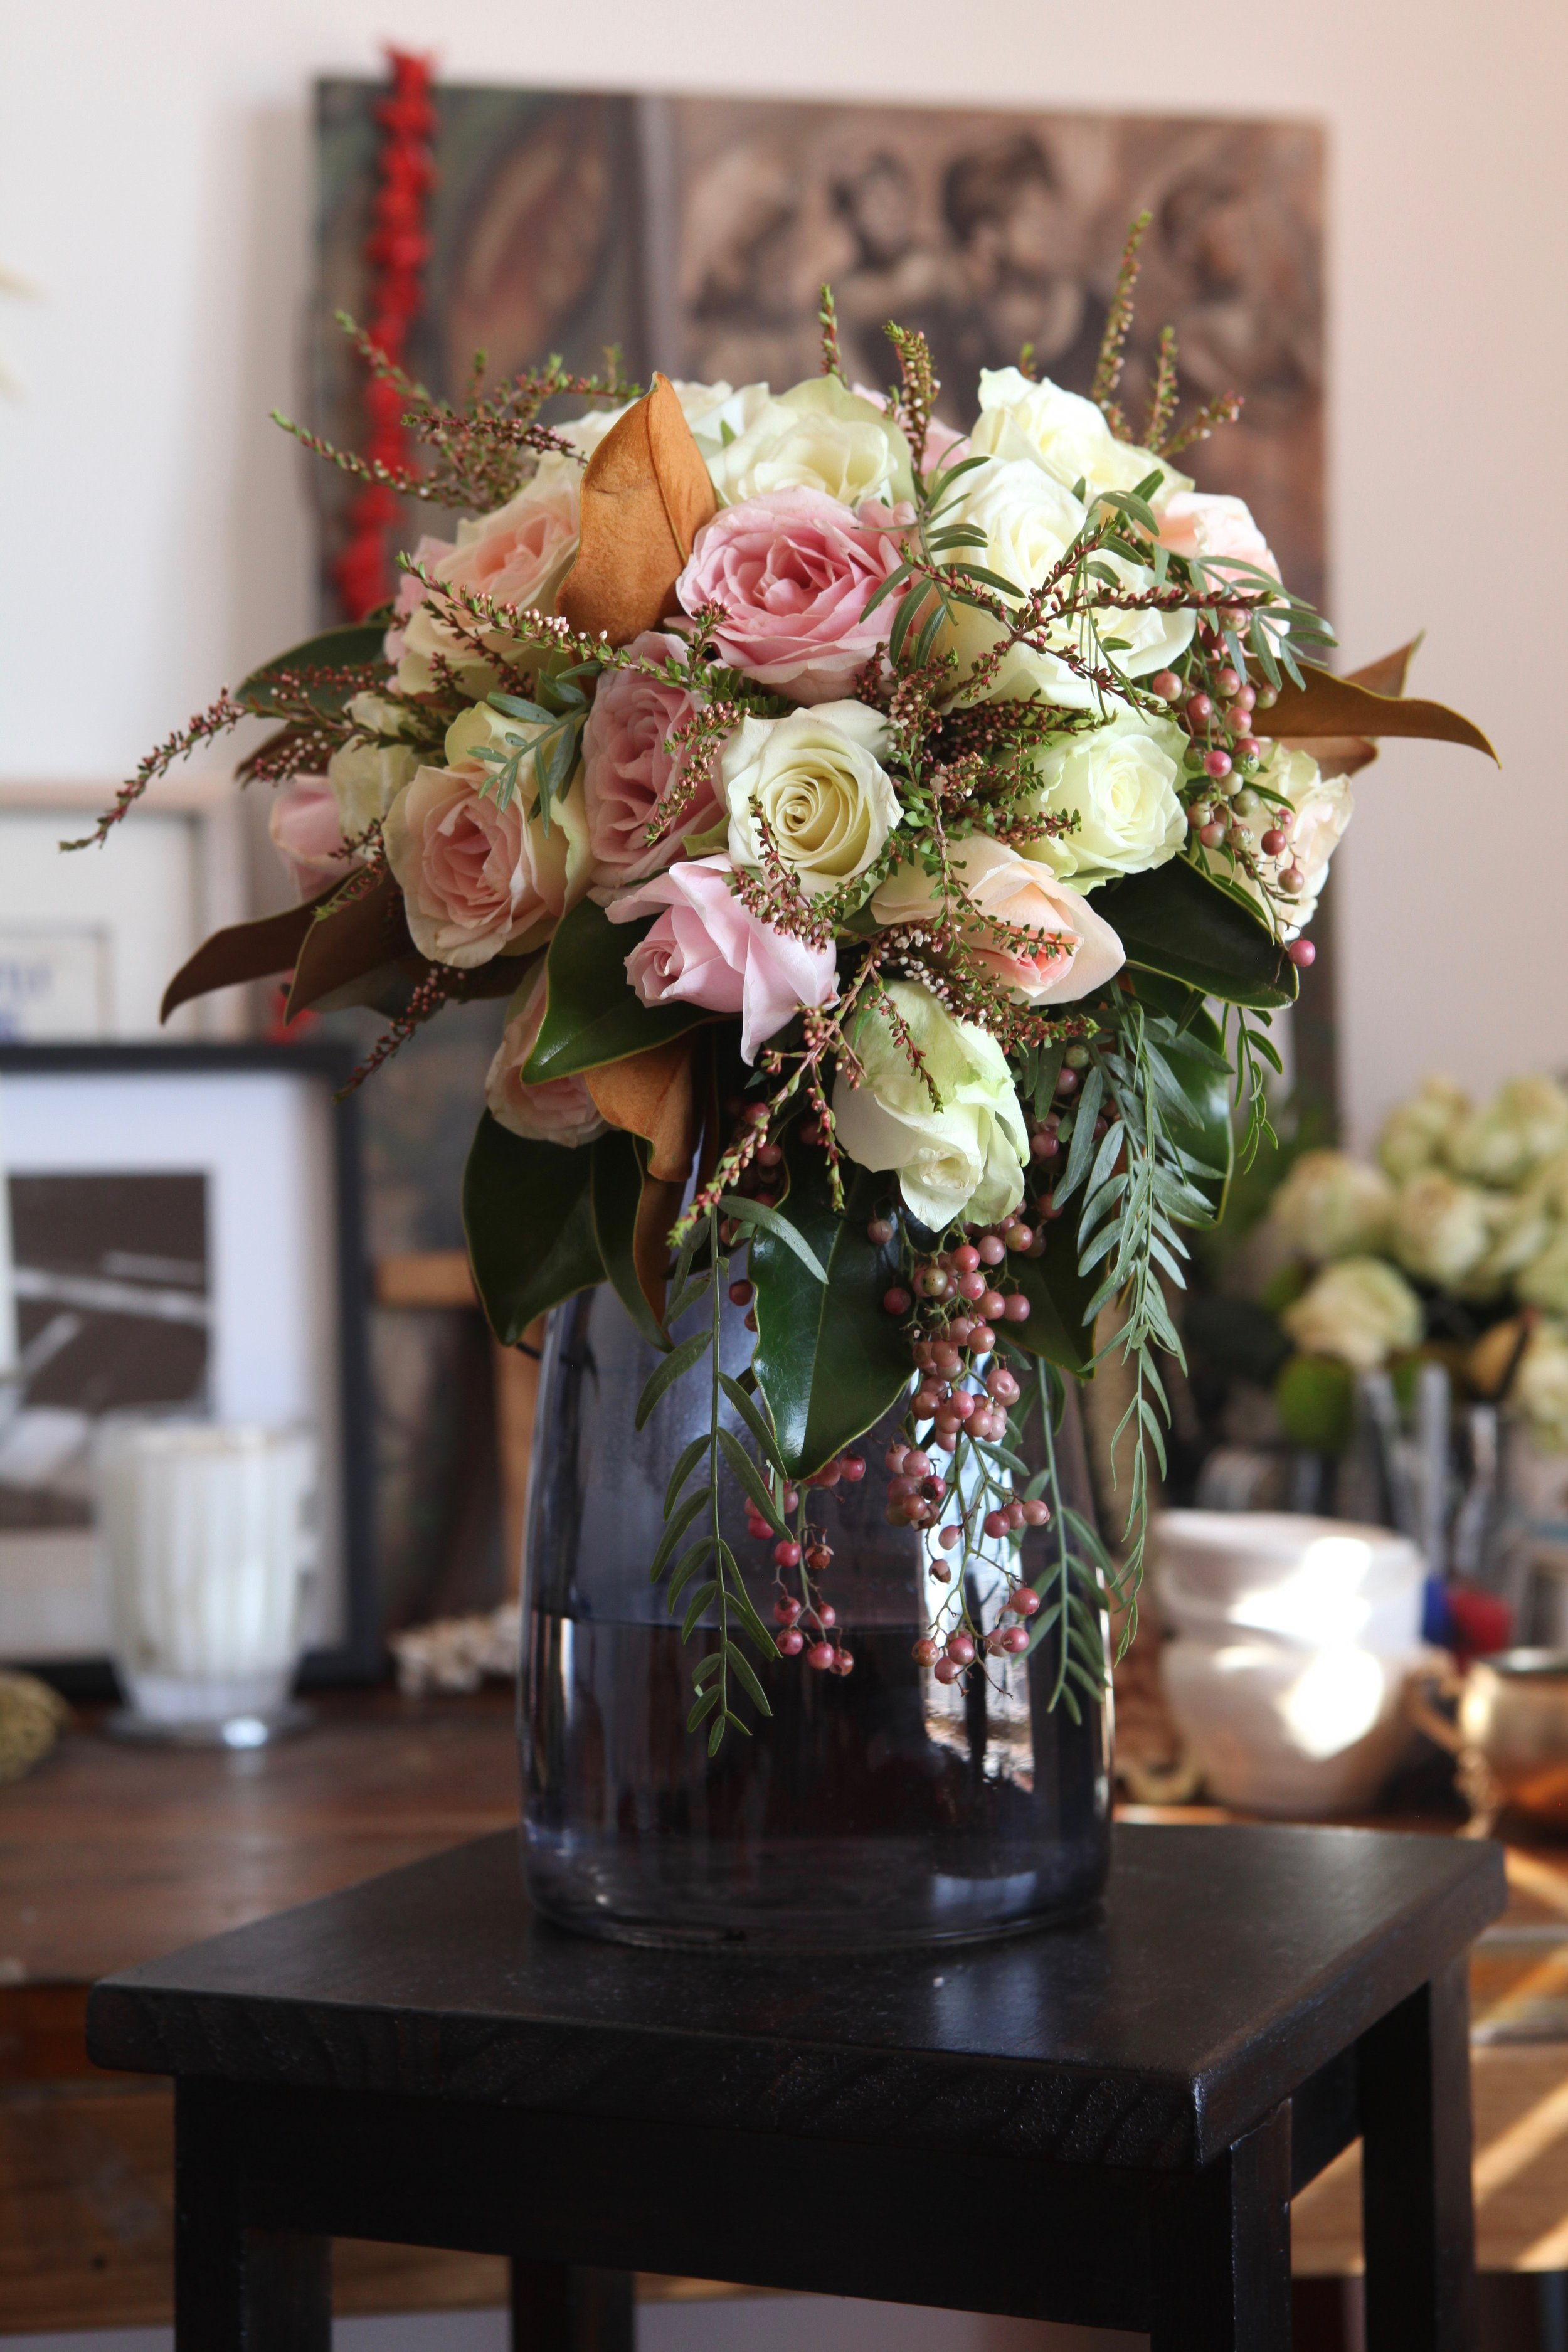 A wired boho-inspired bouquet. Wired means that the rose or flower heads are cut off the stem and then attached to a piece of wire. When you wire flowers, you can control and manipulate the way that they will sit in a bouquet. It's a labour intensive floristry technique but worthwhile if you want to achieve a certain look or style.